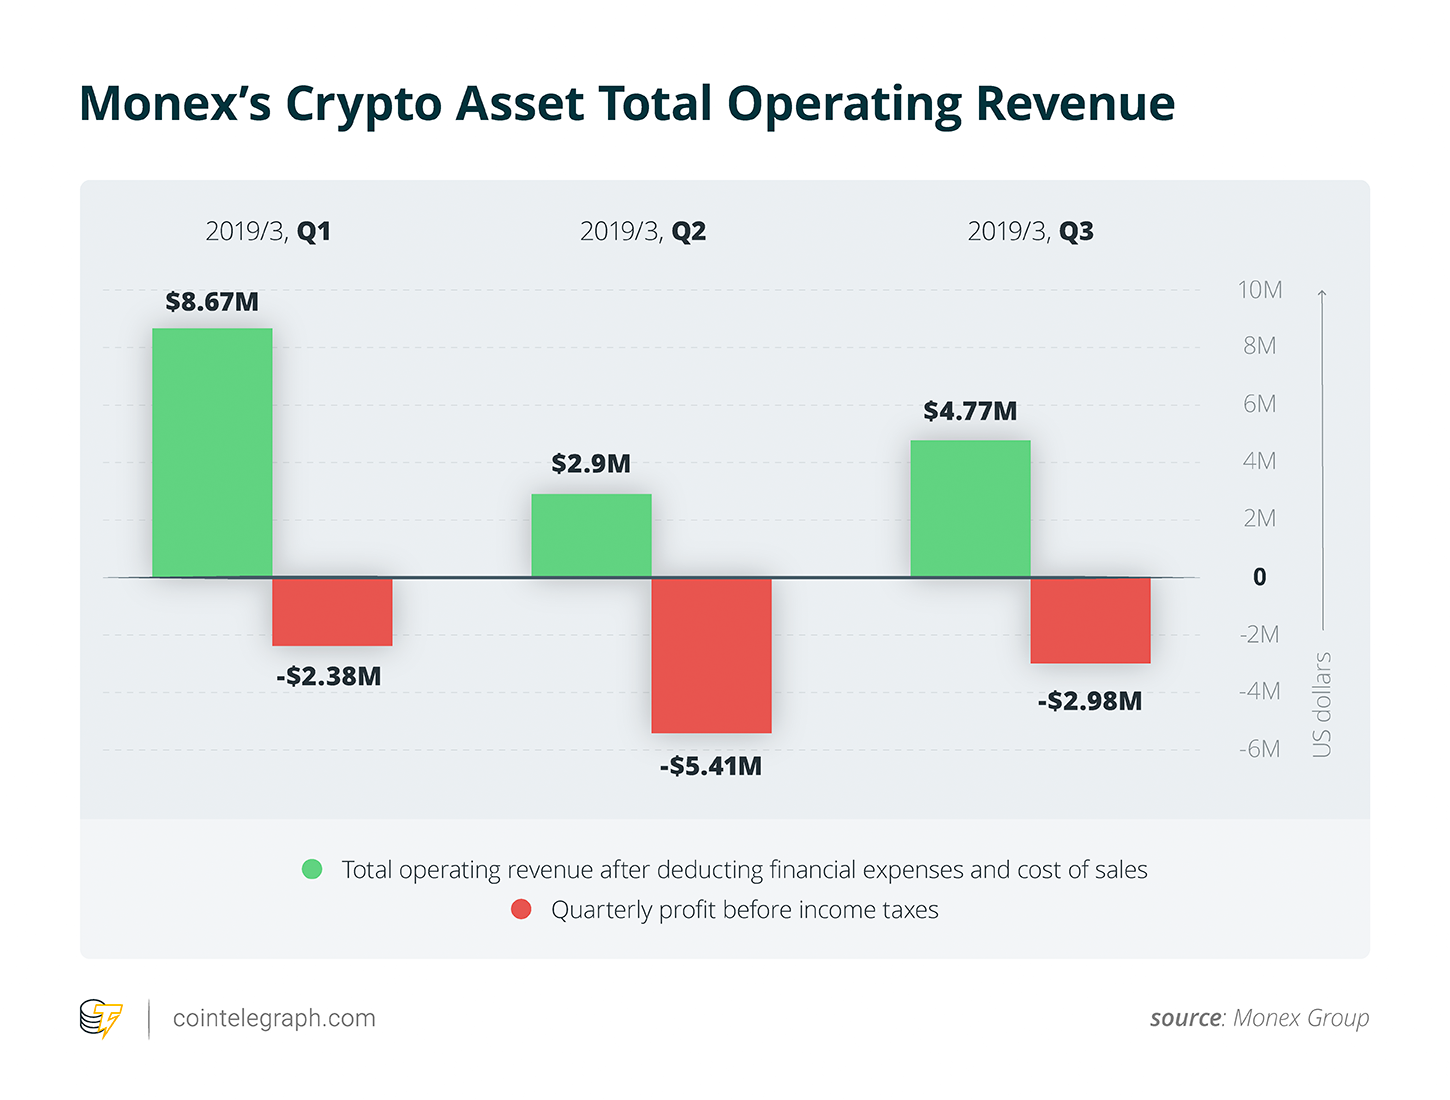 Monex's total operating revenue for its crypto asset segment. Source: Monex